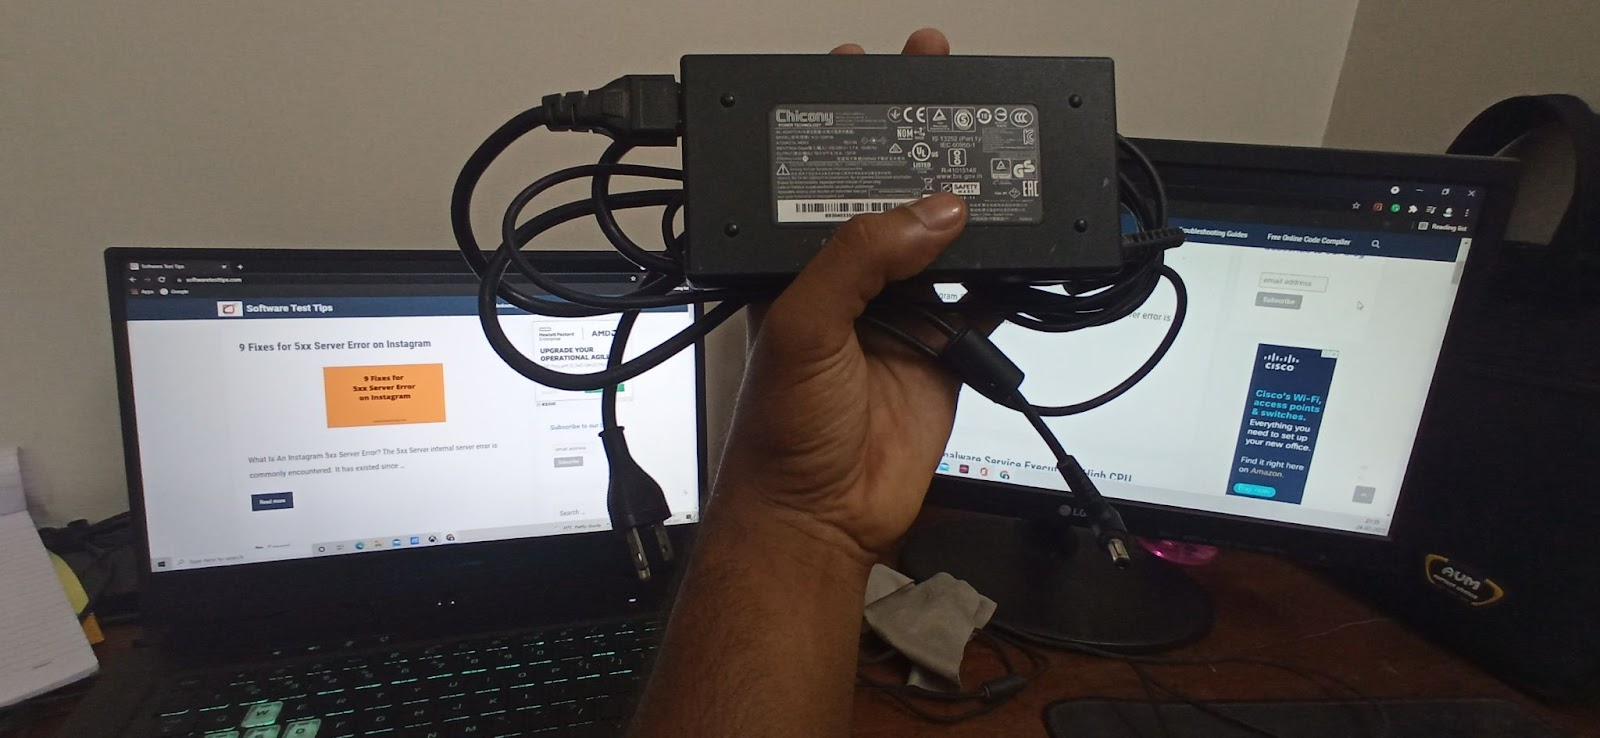 240V Chicony charger with adapter brick for MSI laptops